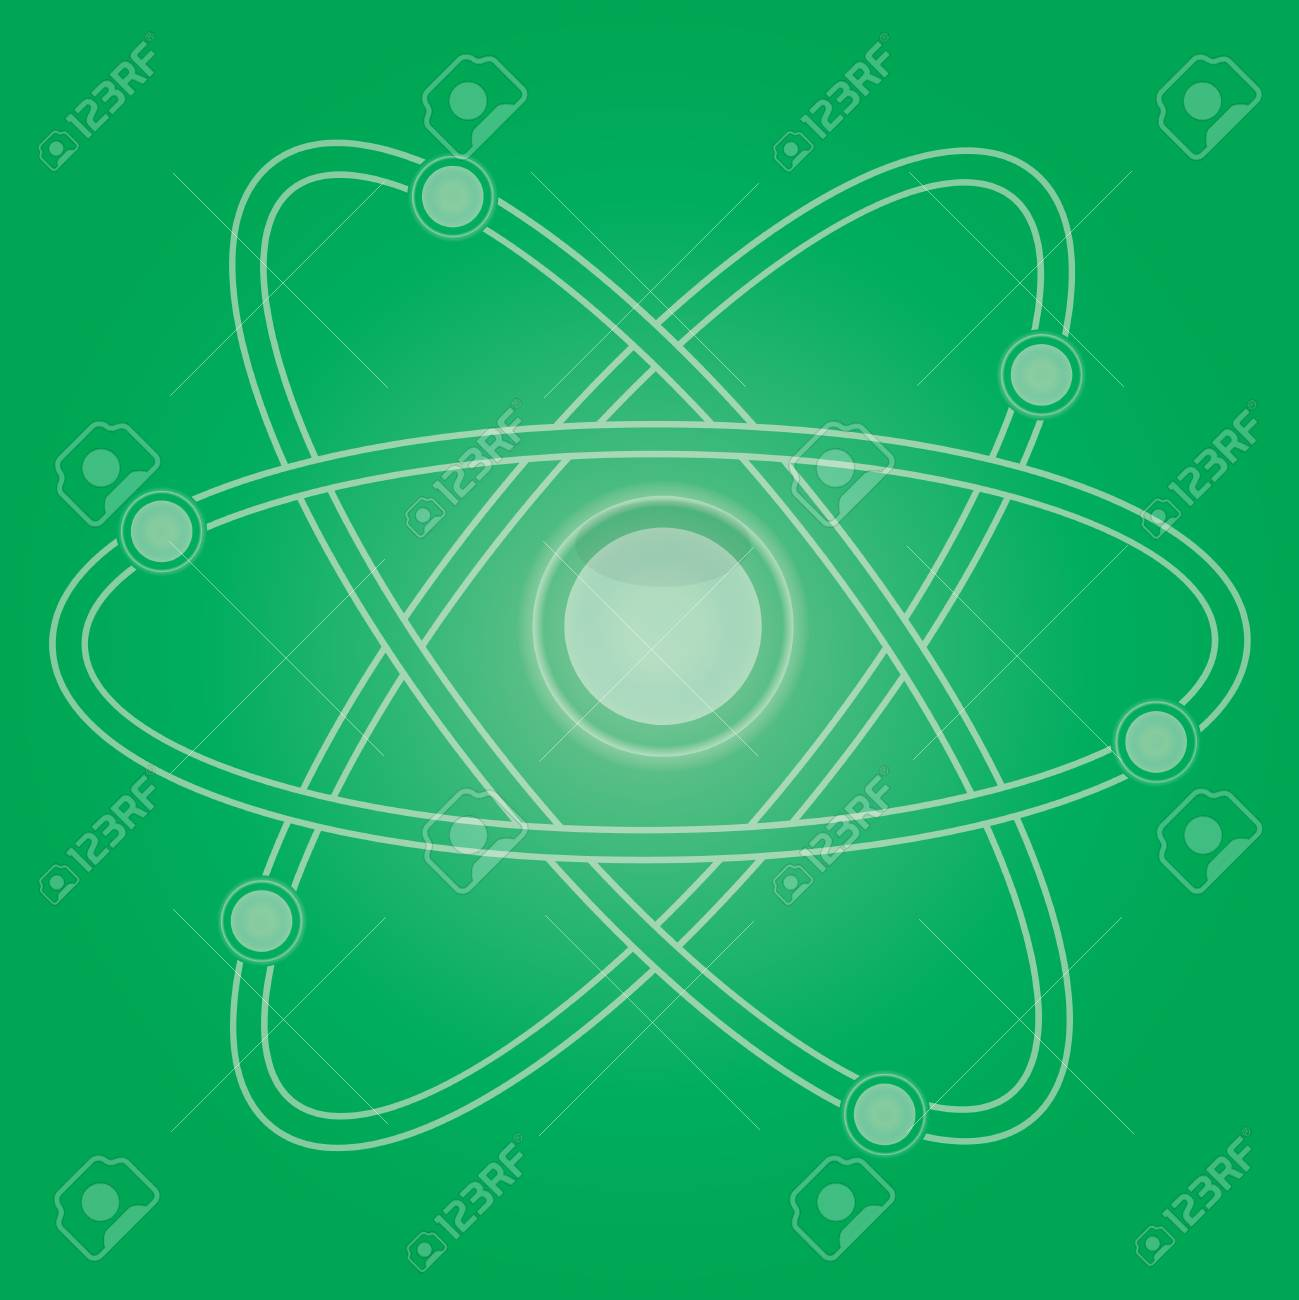 atom part vector Stock Vector - 13858694